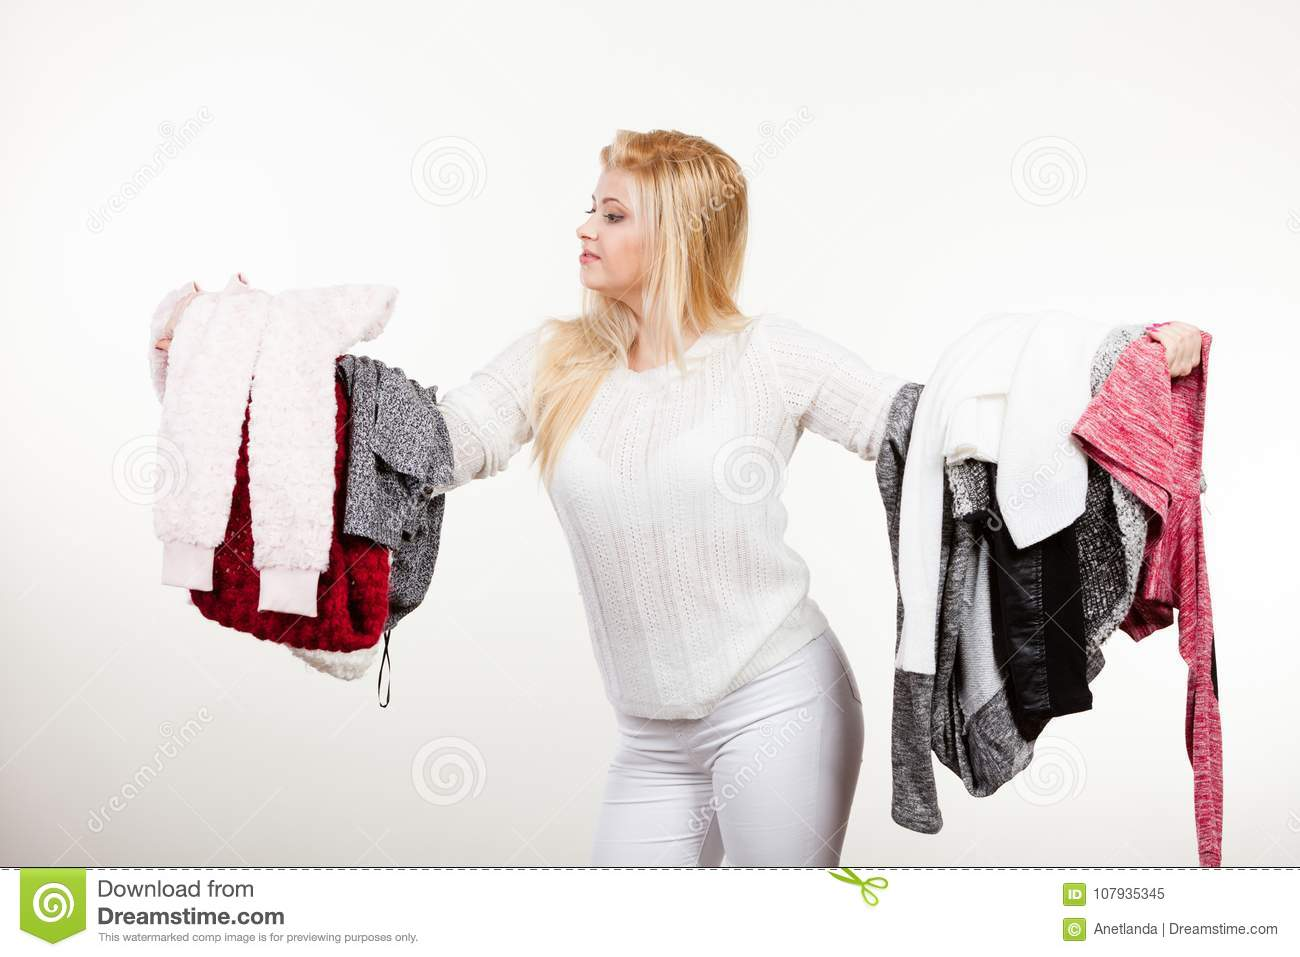 What is stock clothing